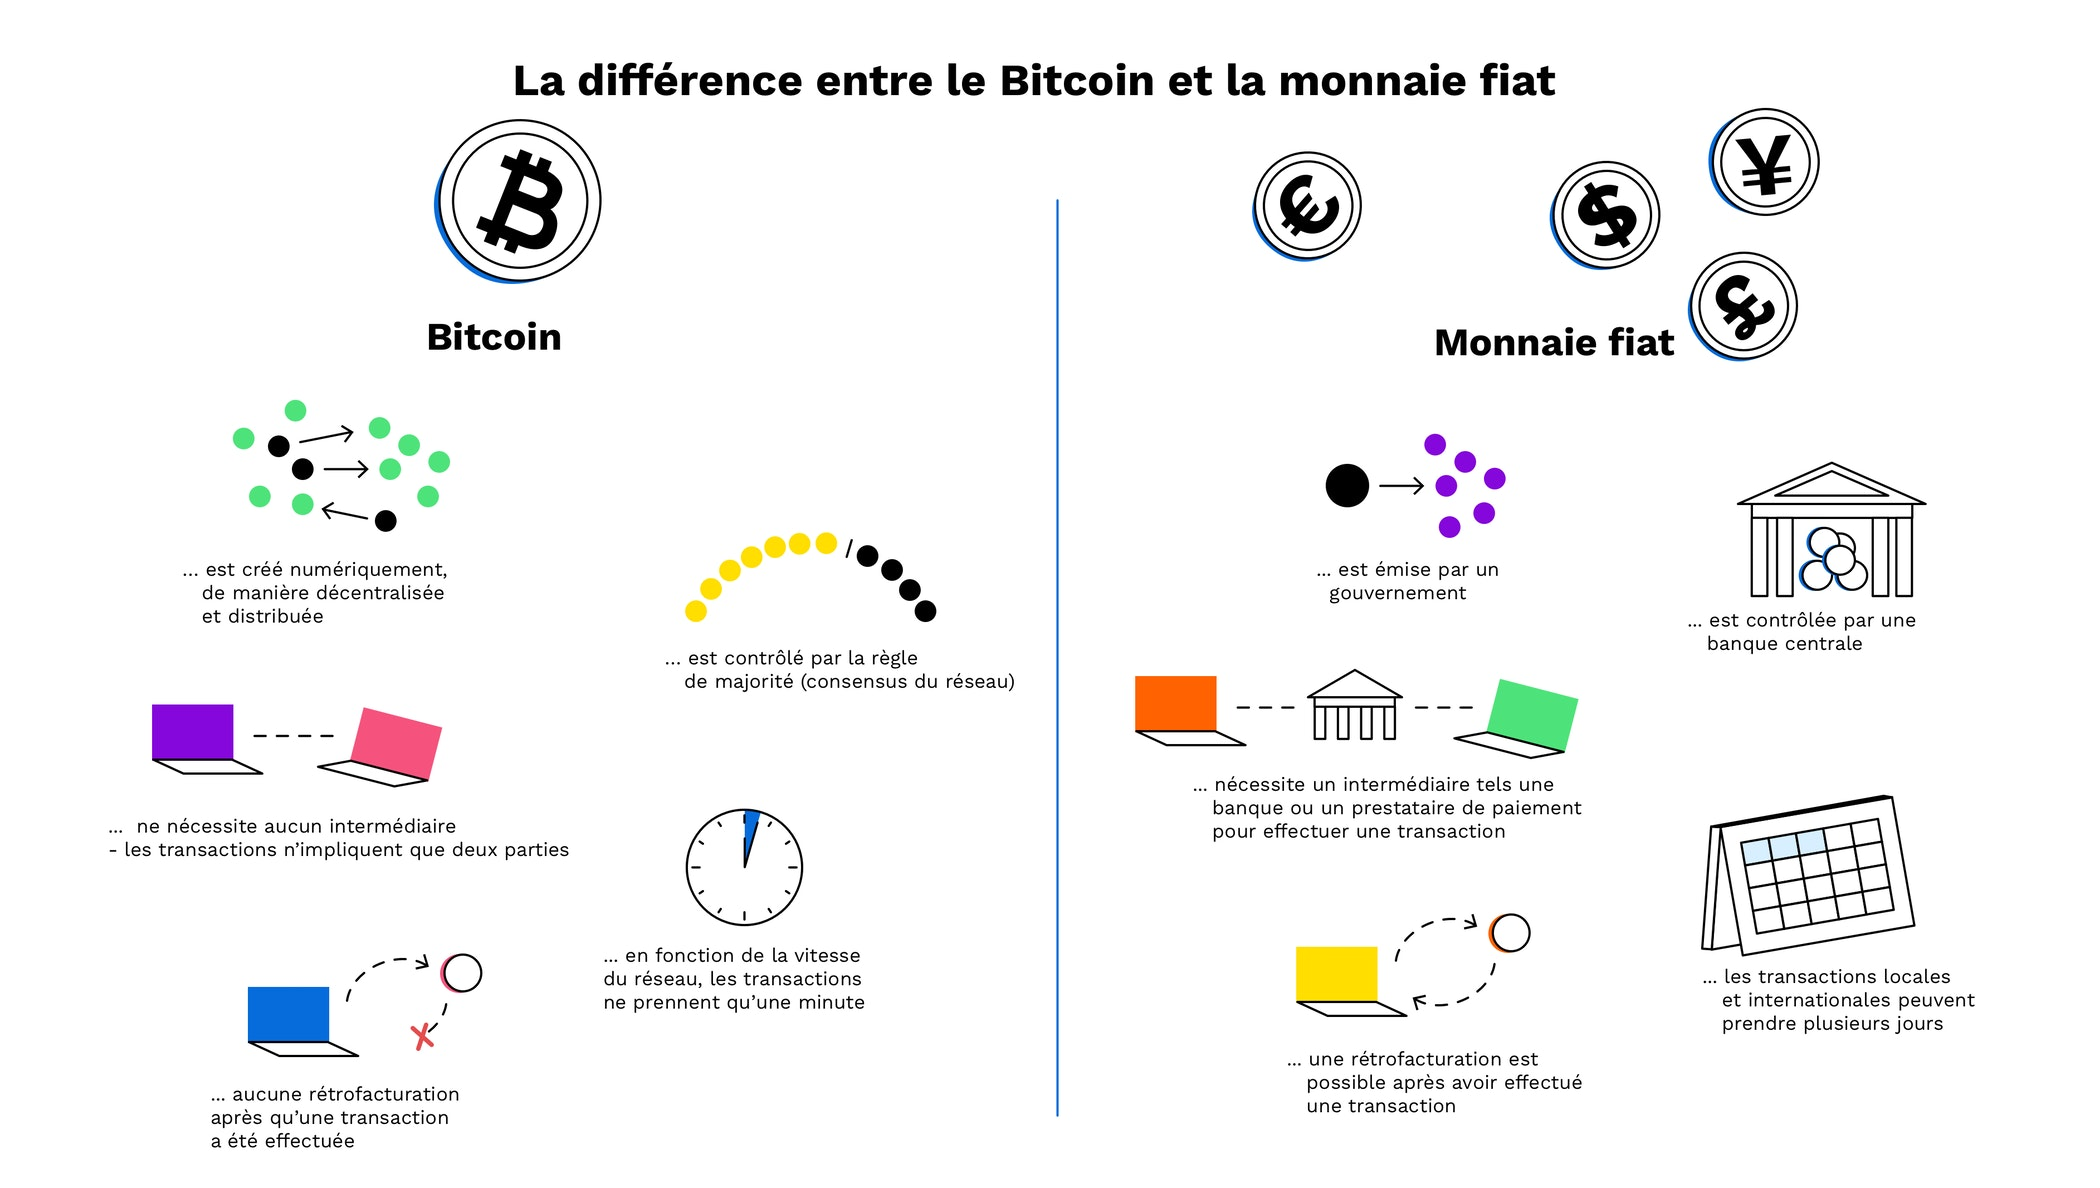 « Crypto-monnaies » (Bitcoin, etc.) : attention aux arnaques !